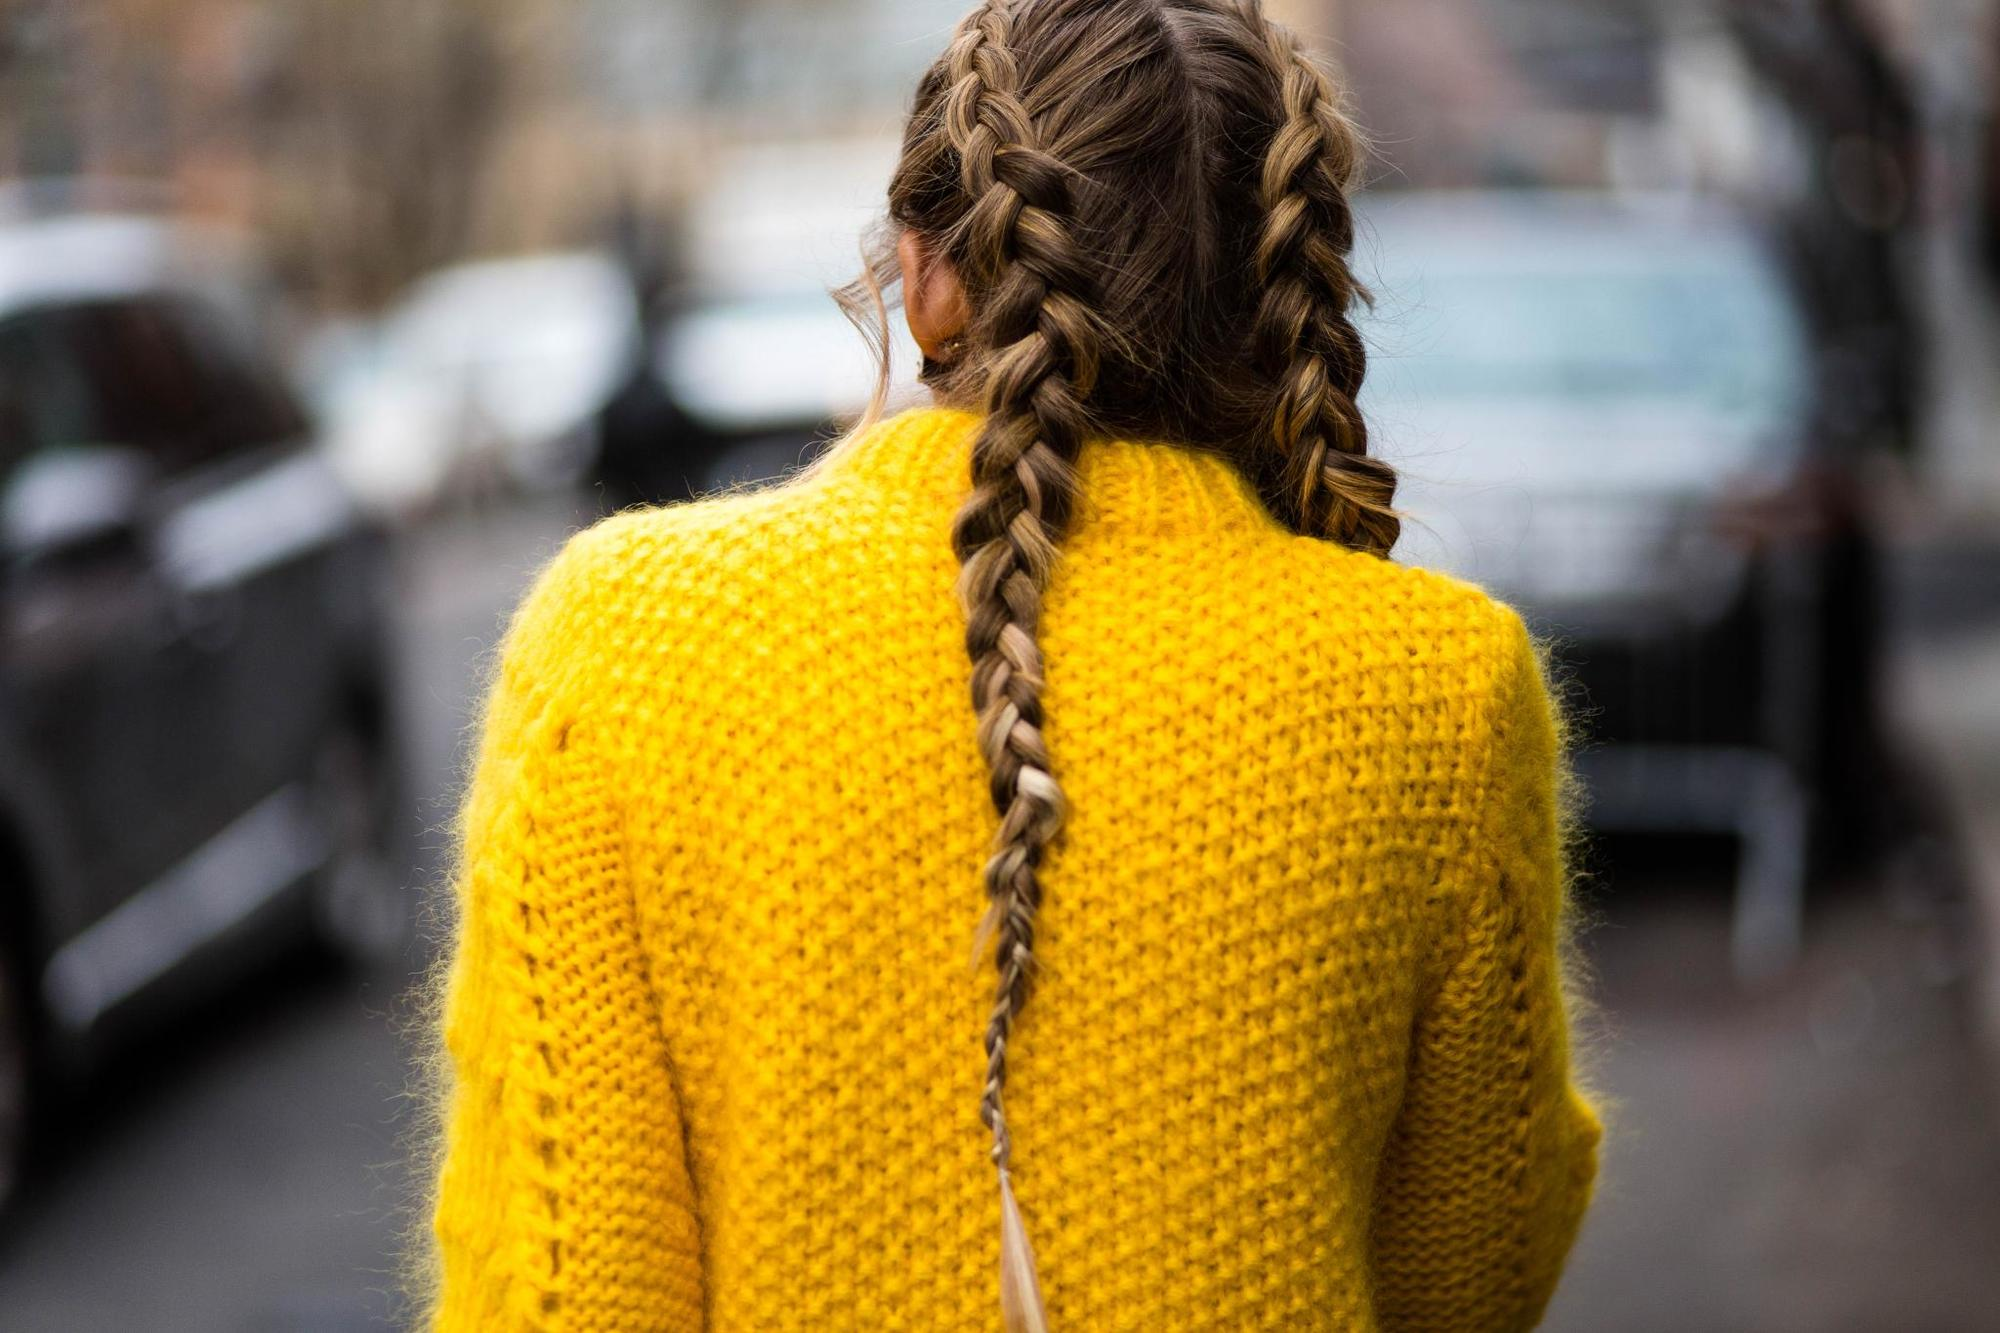 street style hair trend forecast: neat braids